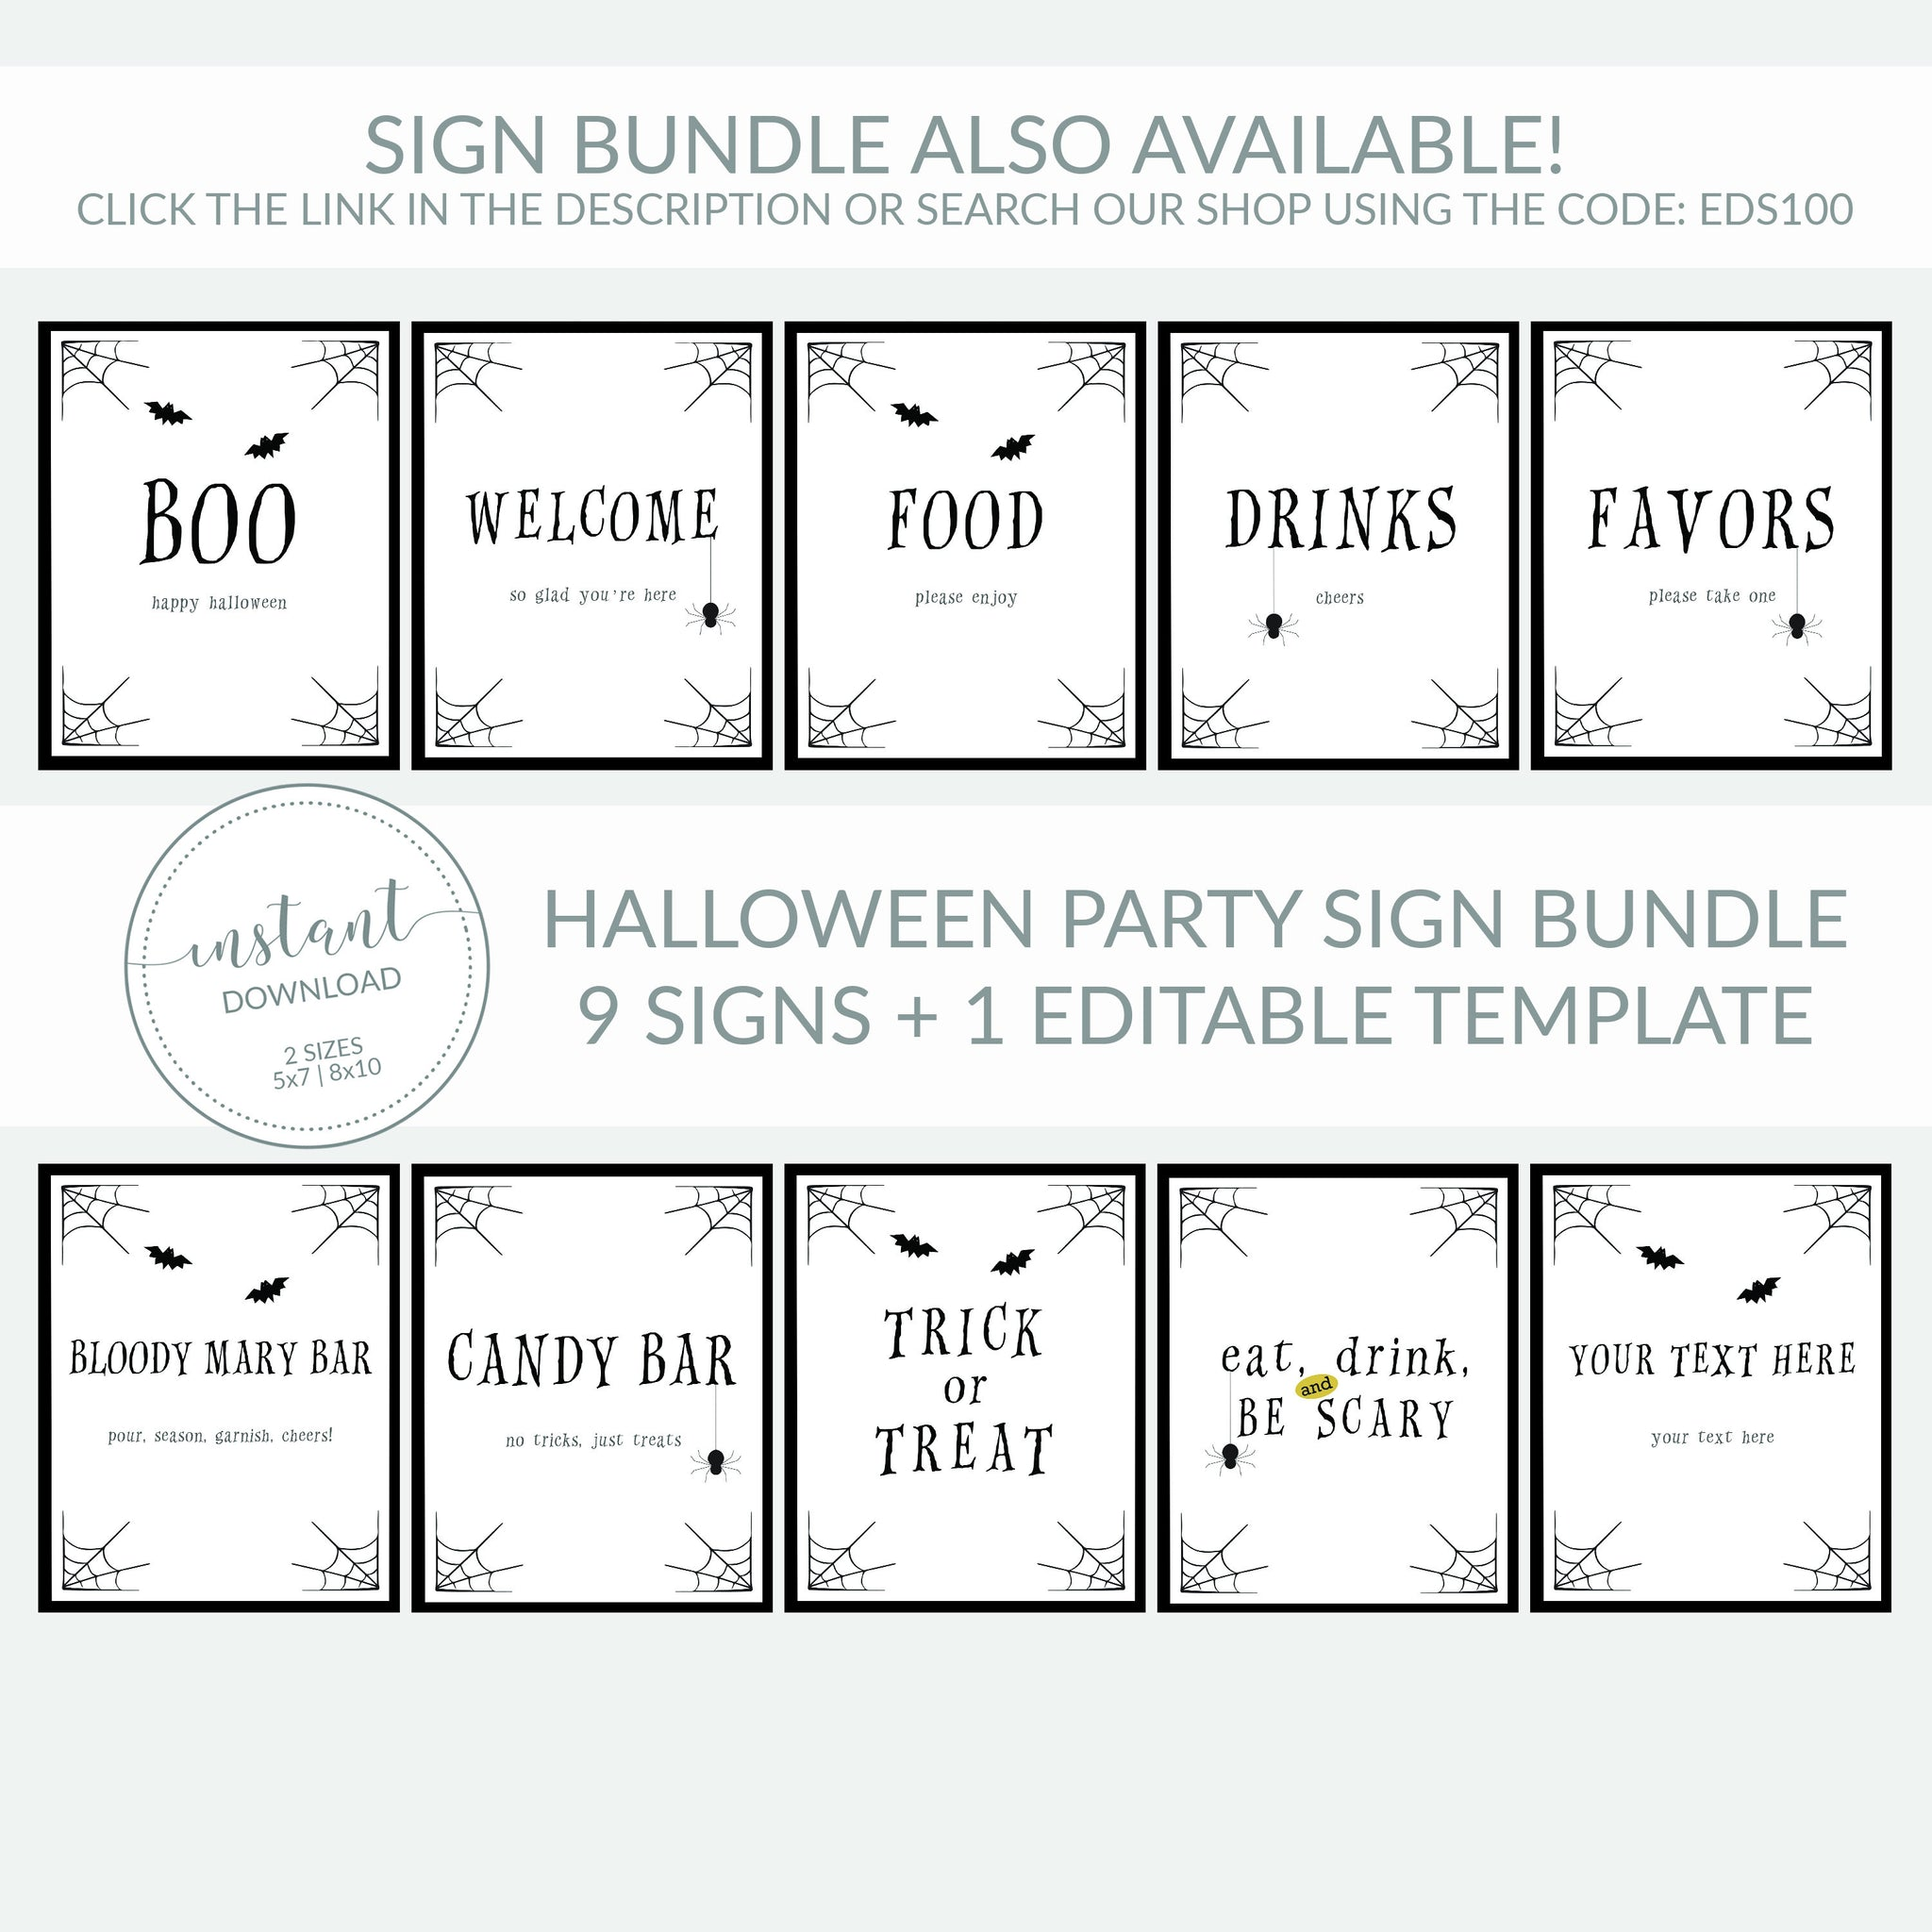 Halloween Party Food Sign, Halloween Brunch Sign, Halloween Party Decorations and Supplies - INSTANT DOWNLOAD - EDS100